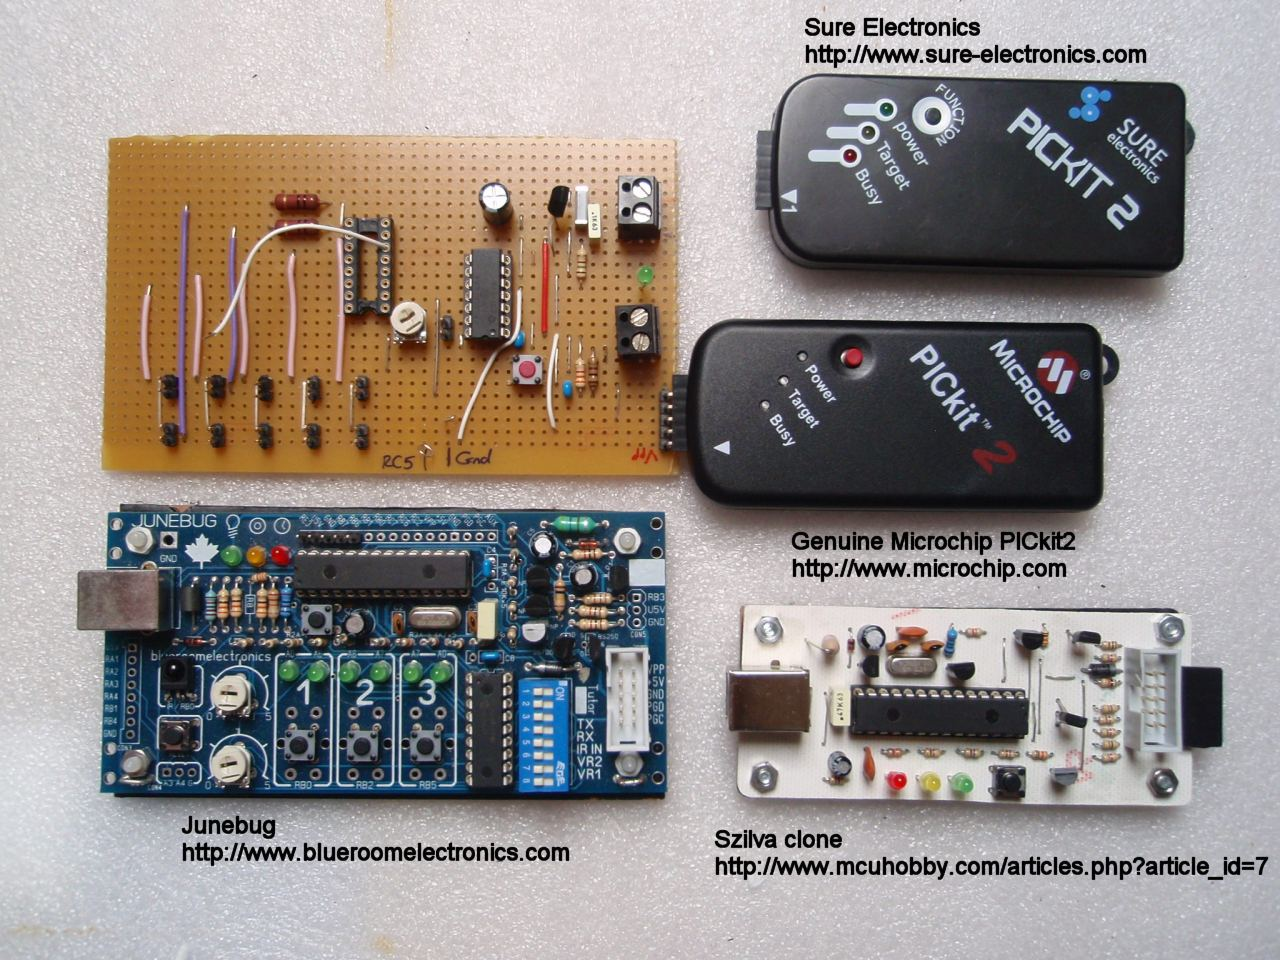 pickit 2 programmer circuit diagram ford bronco starter solenoid wiring pic projects top page